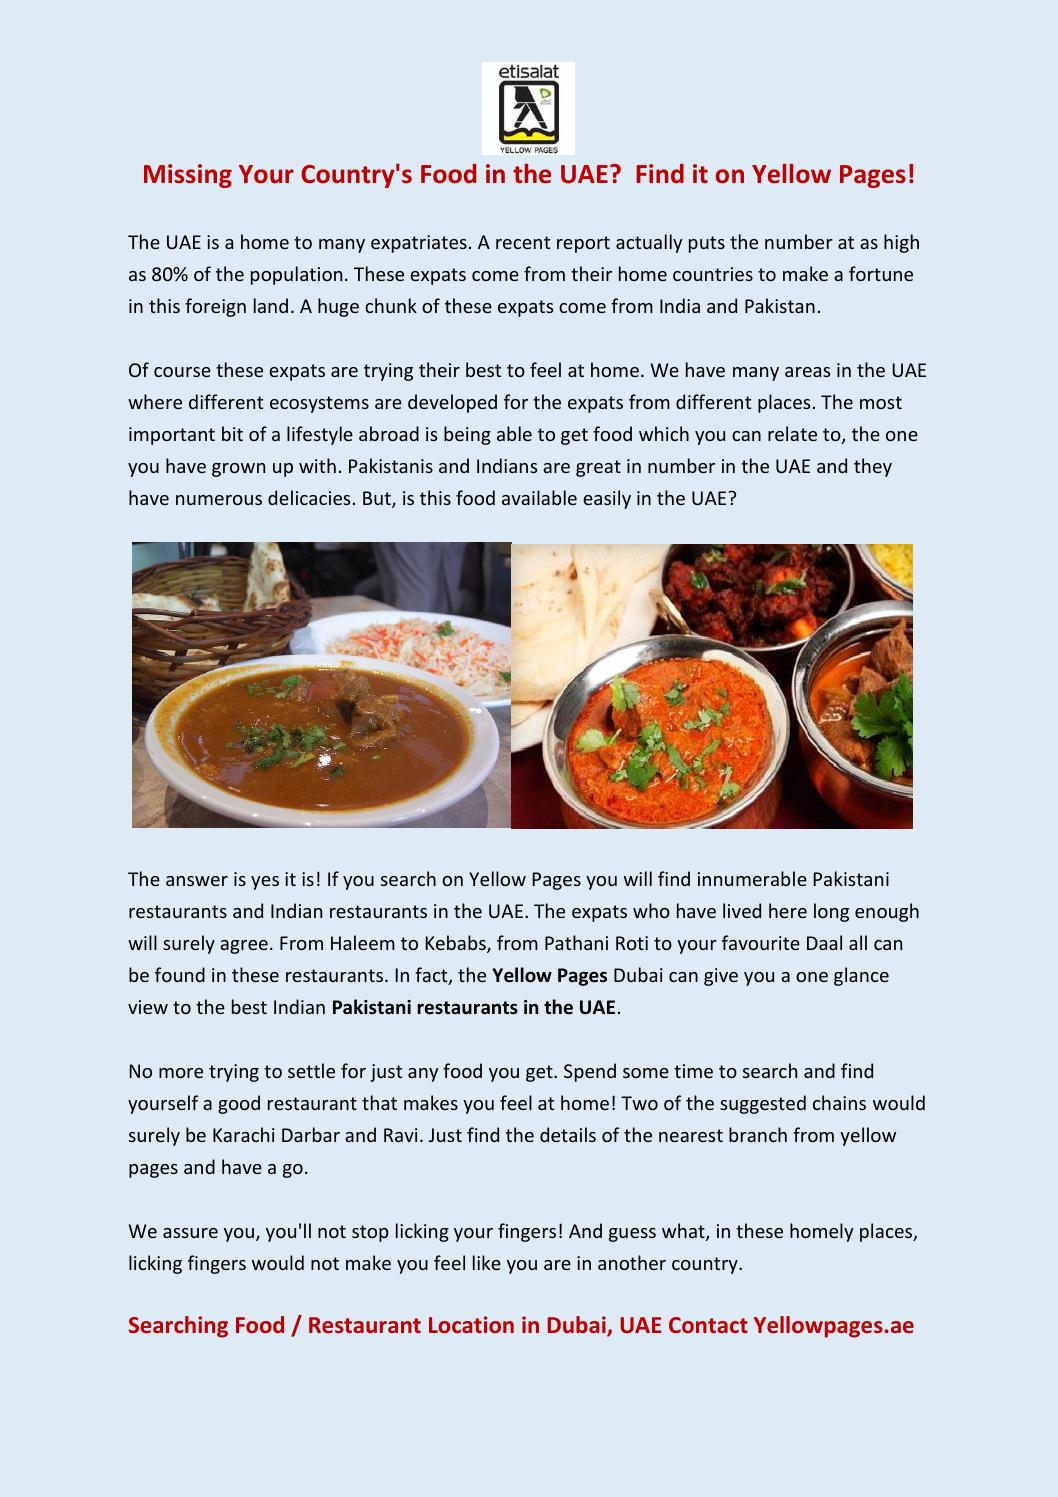 Indian Pakistani Restaurants in the UAE-Yellowpages ae by Etisalat